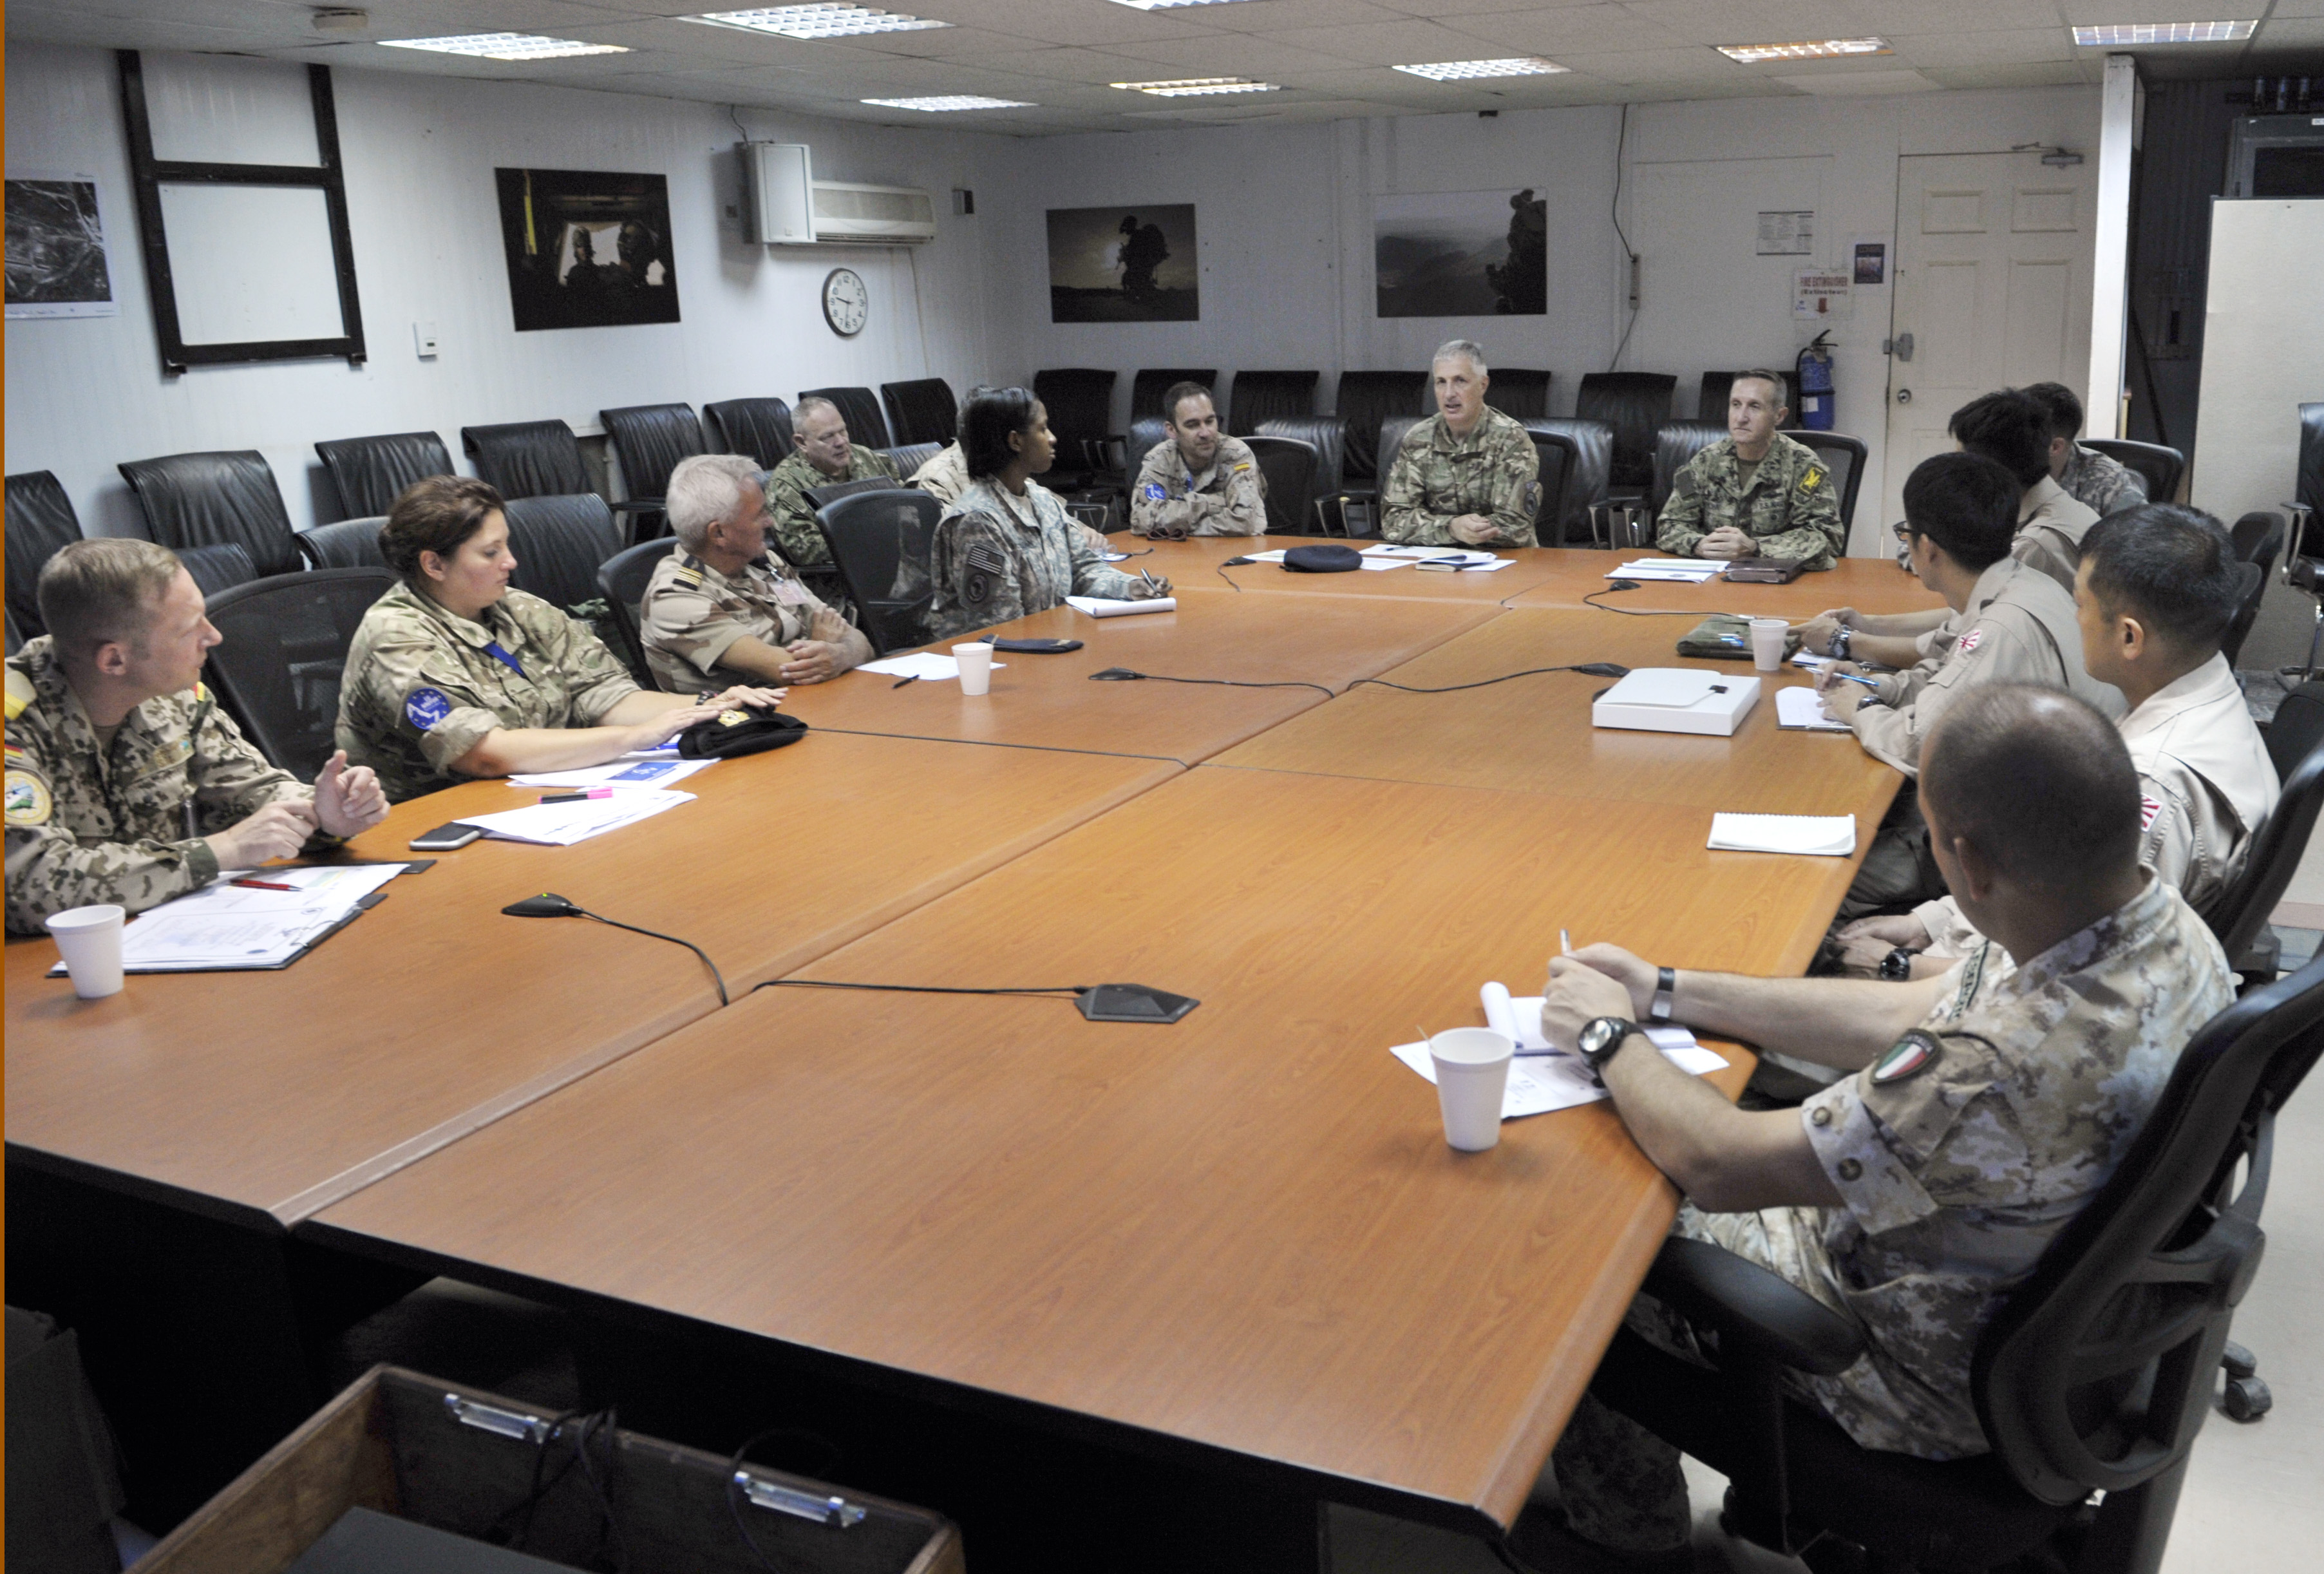 Logistics officers from eight nations meet together during the Combined Joint Task Force-Horn of Africa International Logistics Conference on Camp Lemonnier, Djibouti, March 31, 2015. CJTF-HOA hosted the first-ever meeting of its kind to discuss the logistical challenges in the East Africa region and to build cooperation between the international militaries operating in the region. (U.S. Air Force photo by Tech. Sgt. Ian Dean)